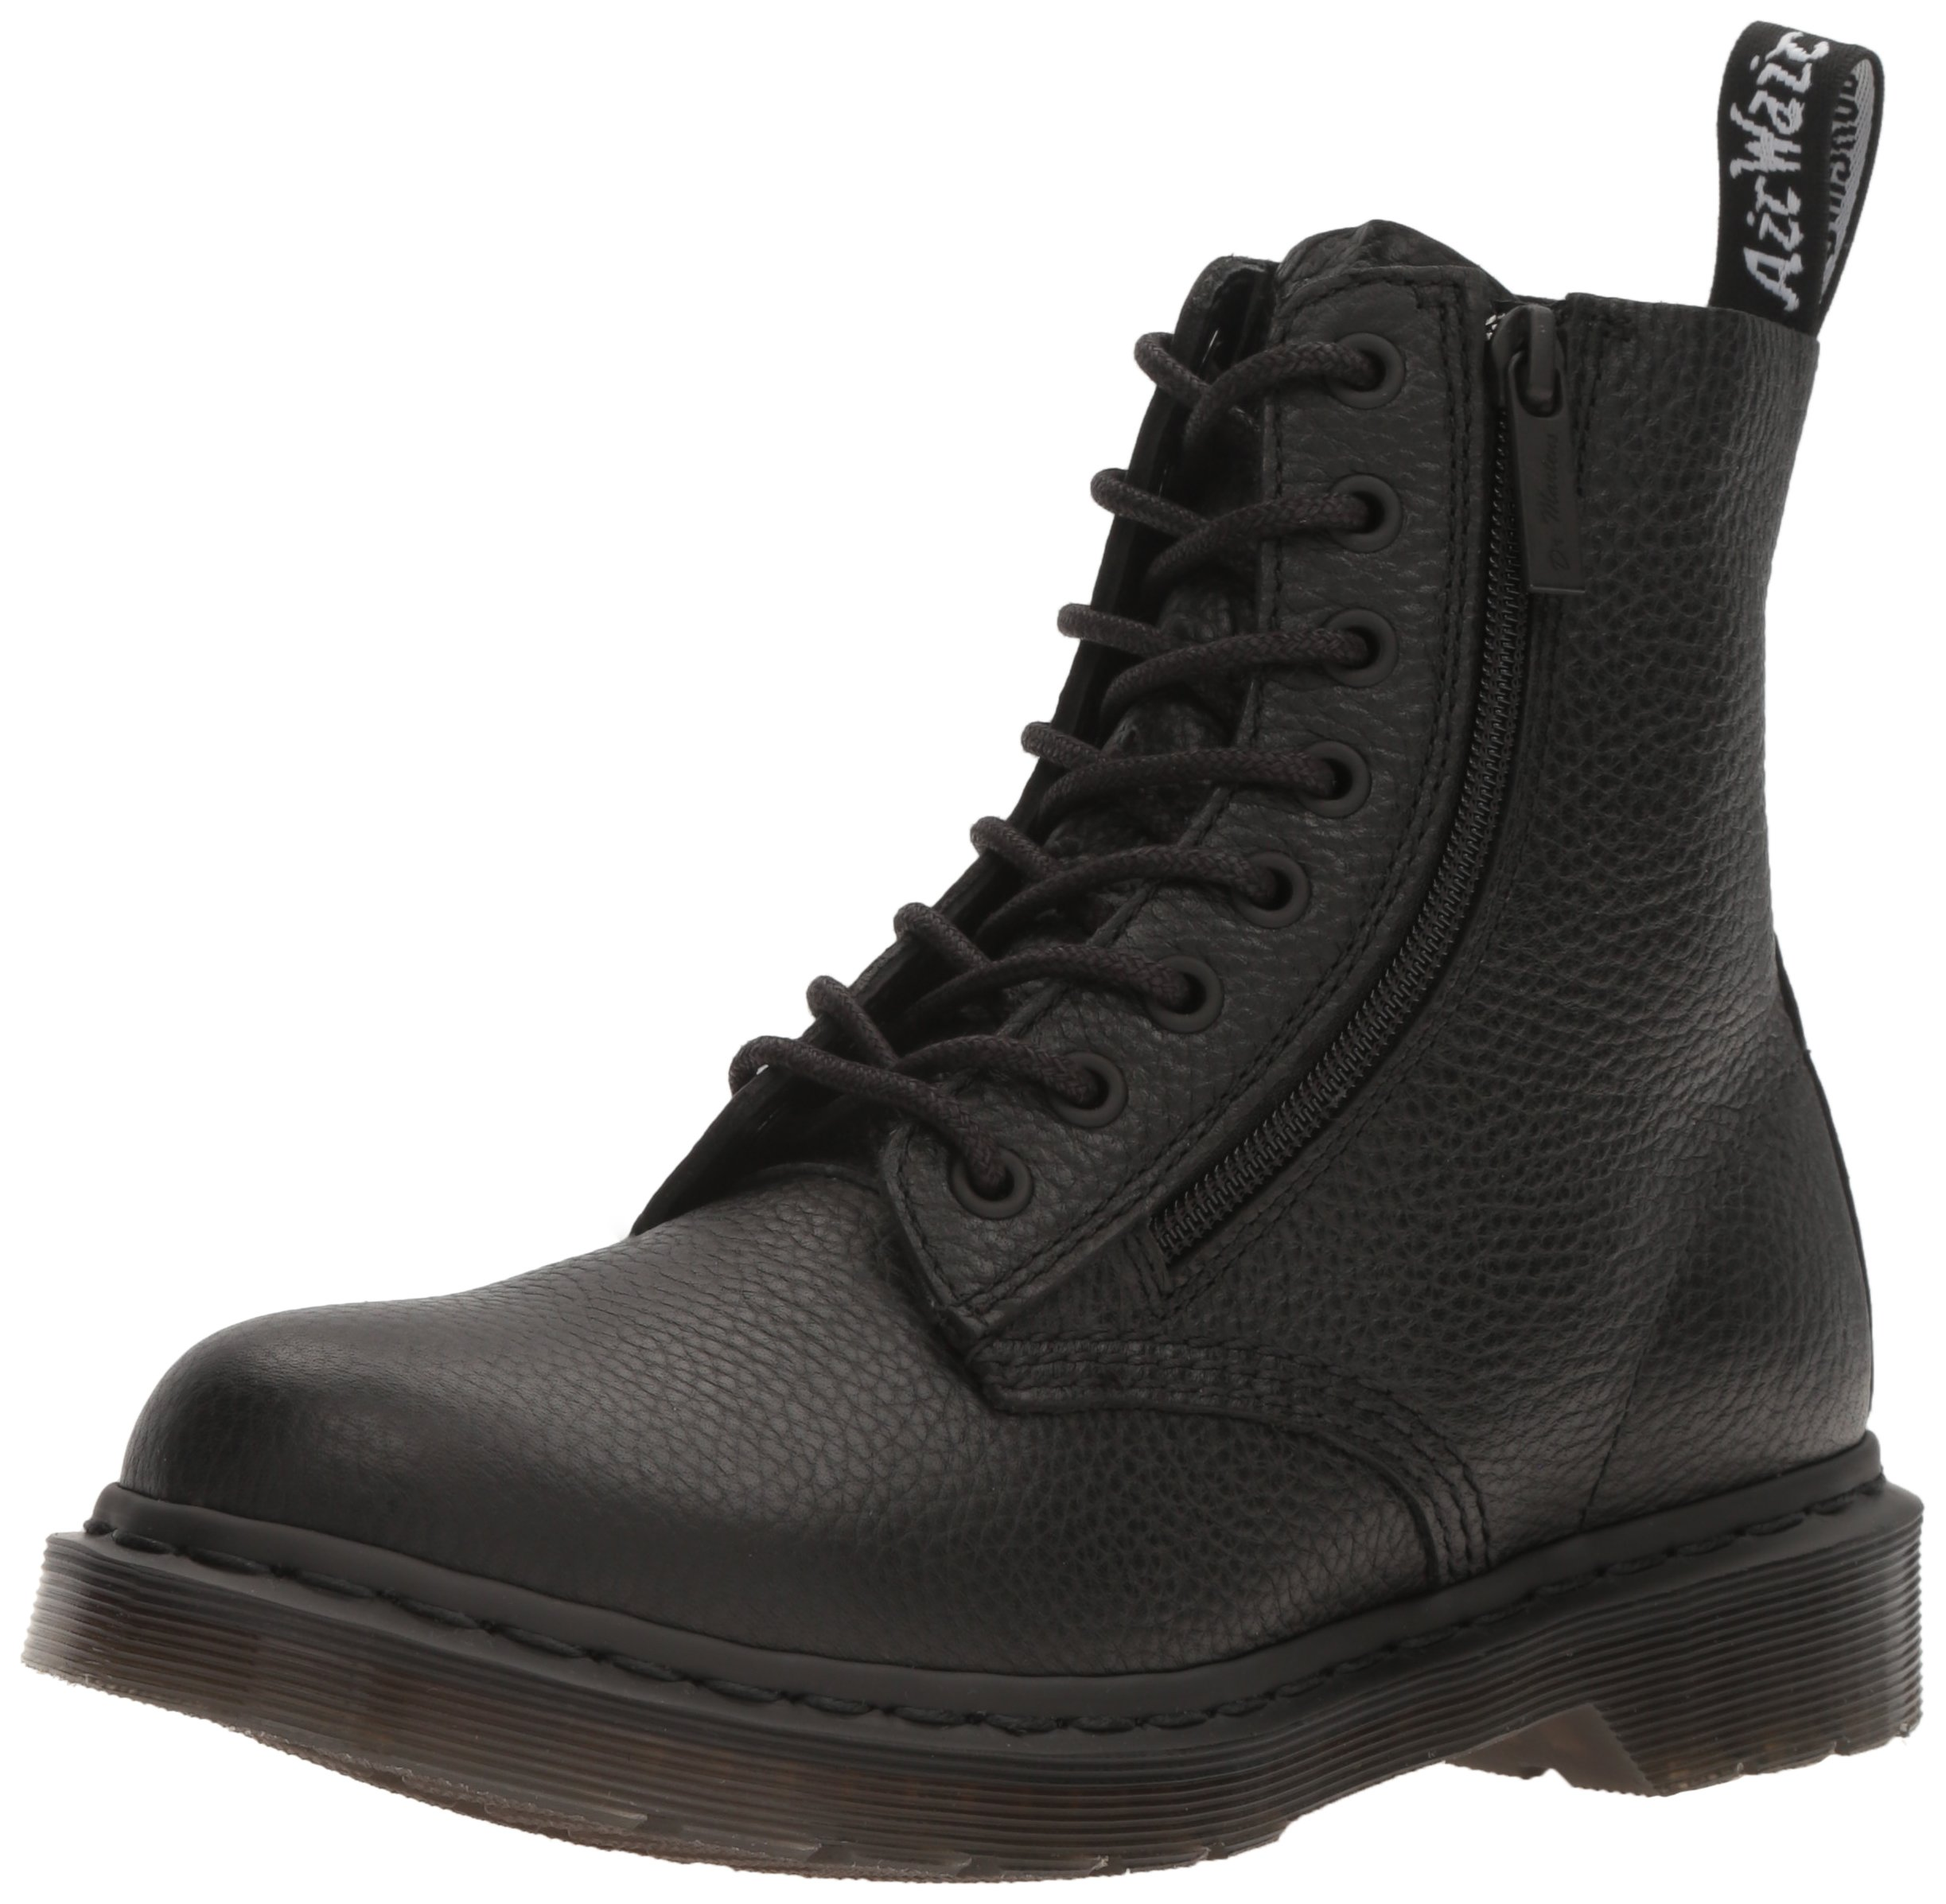 Dr. Martens Women's Pascal W/Zip Combat Boot, Black, 6 UK/8 M US